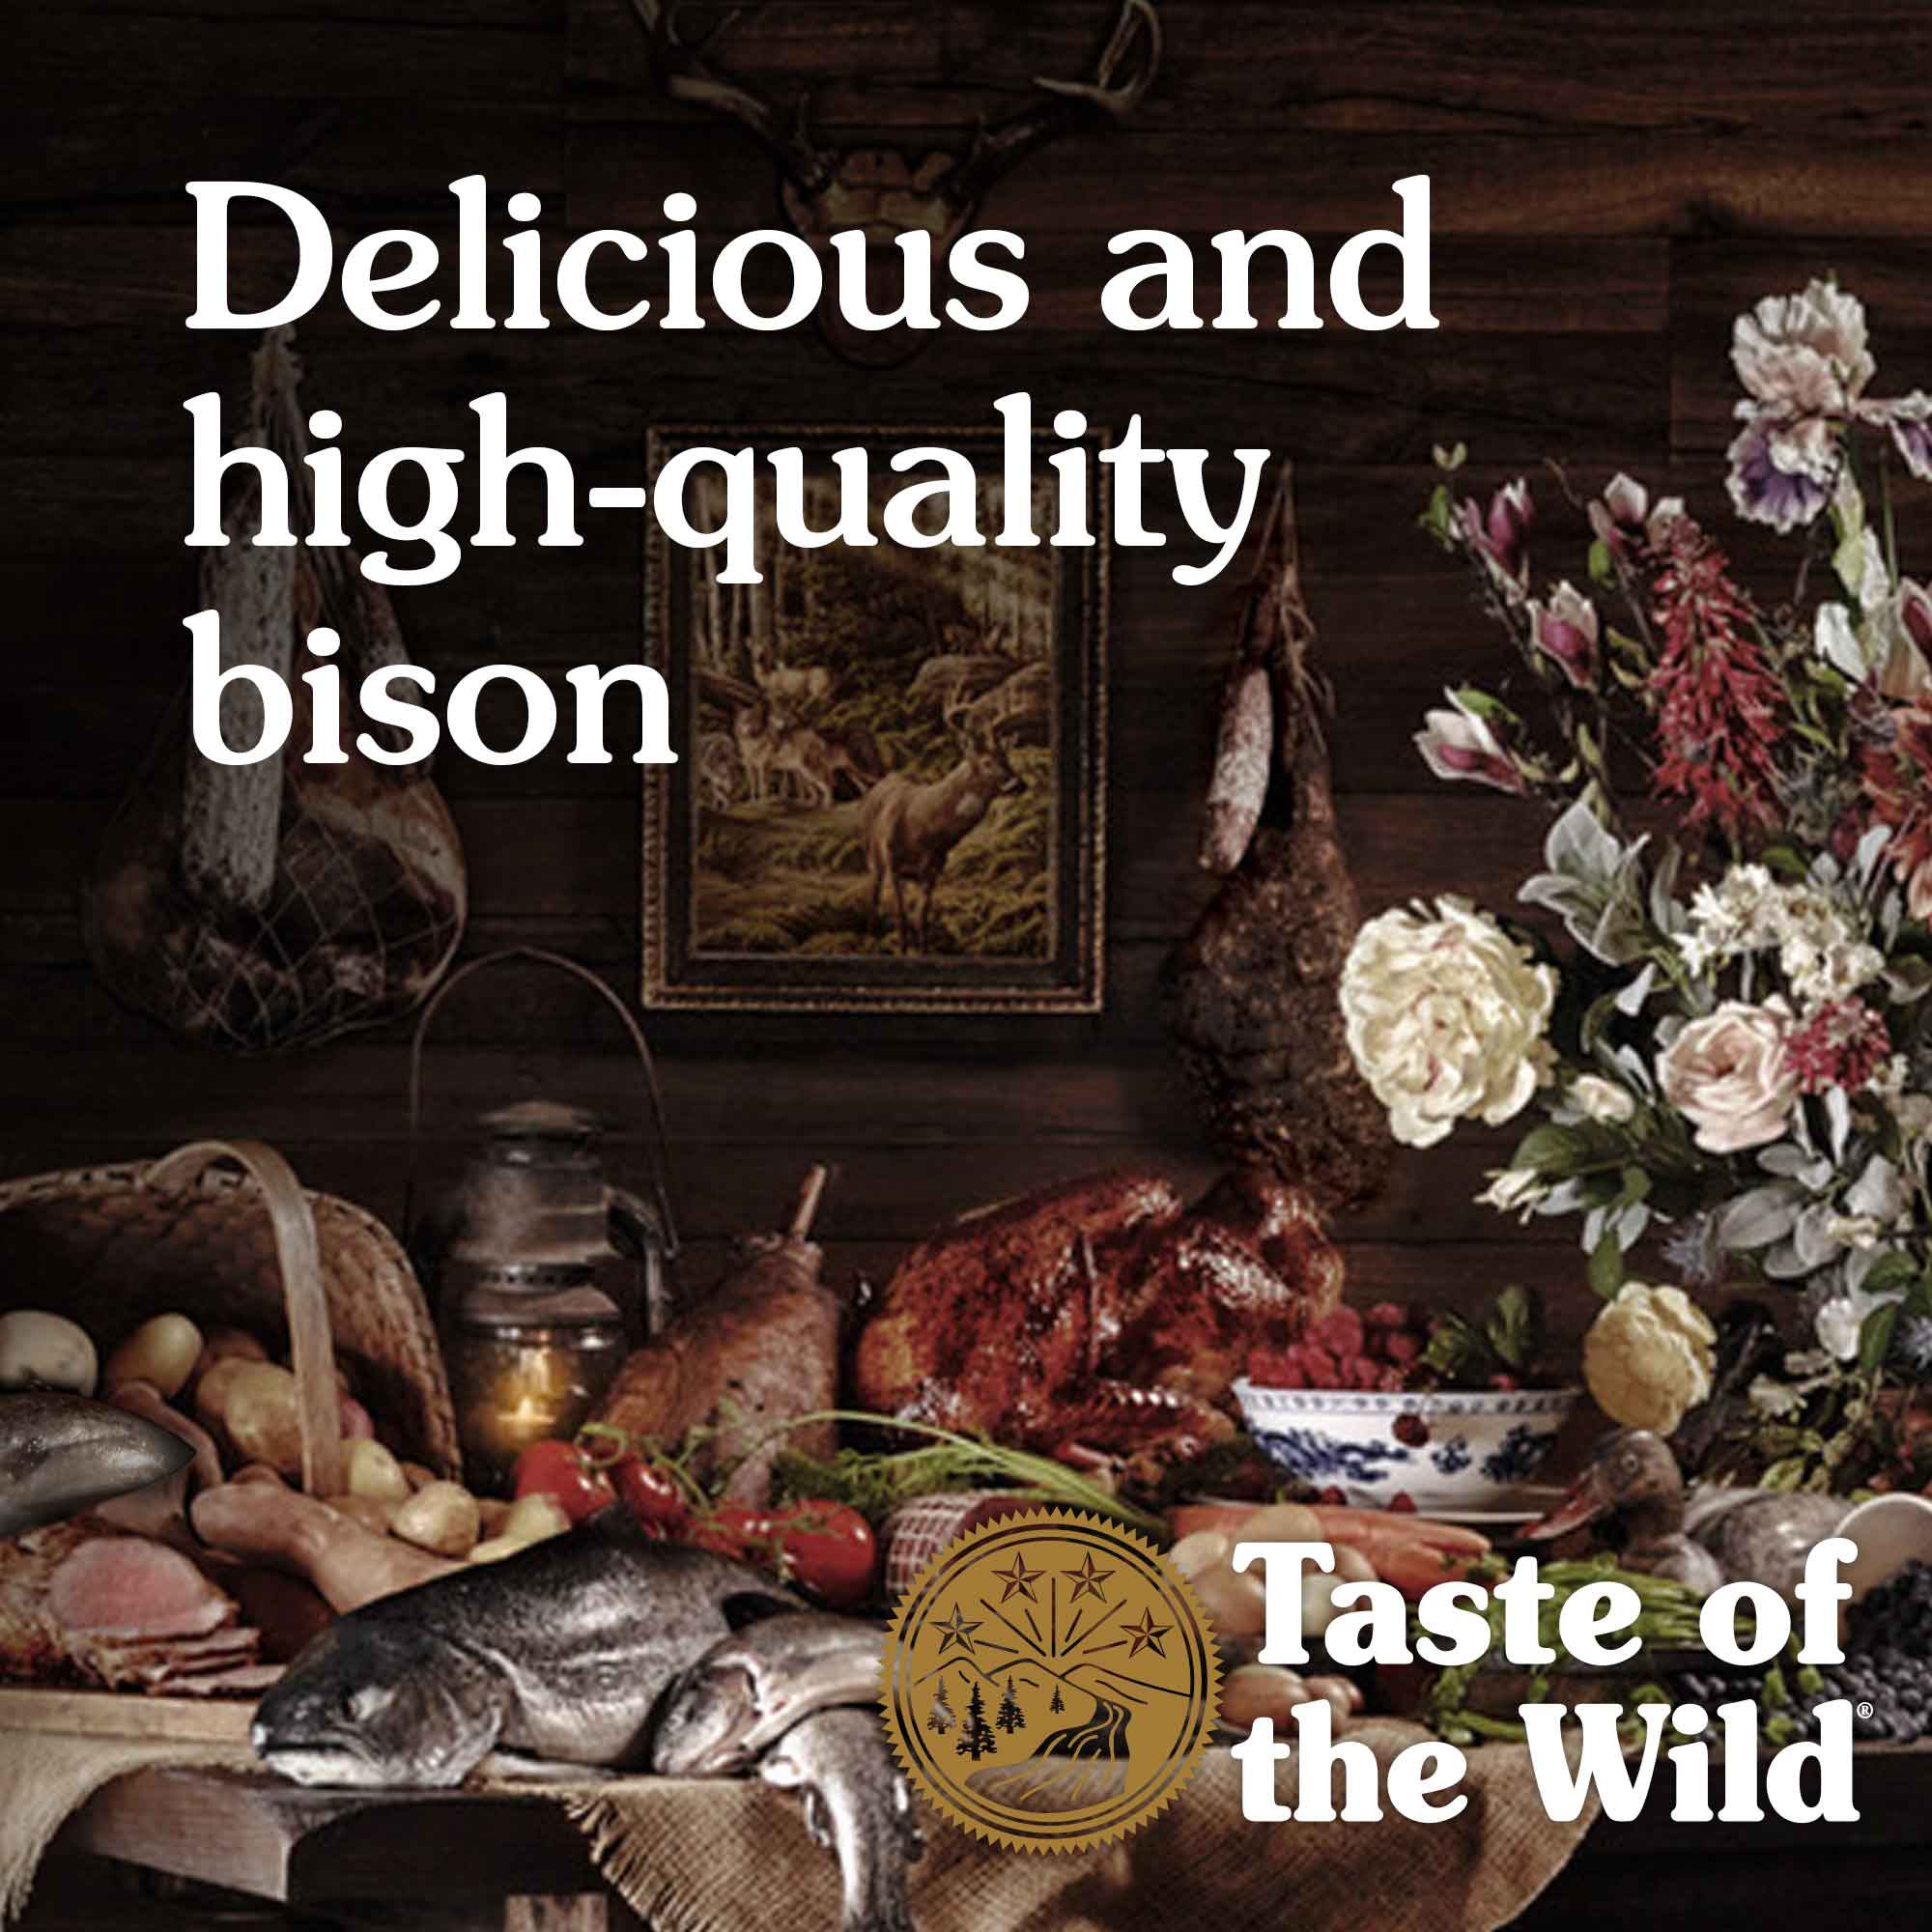 Delicious and high-quality bison